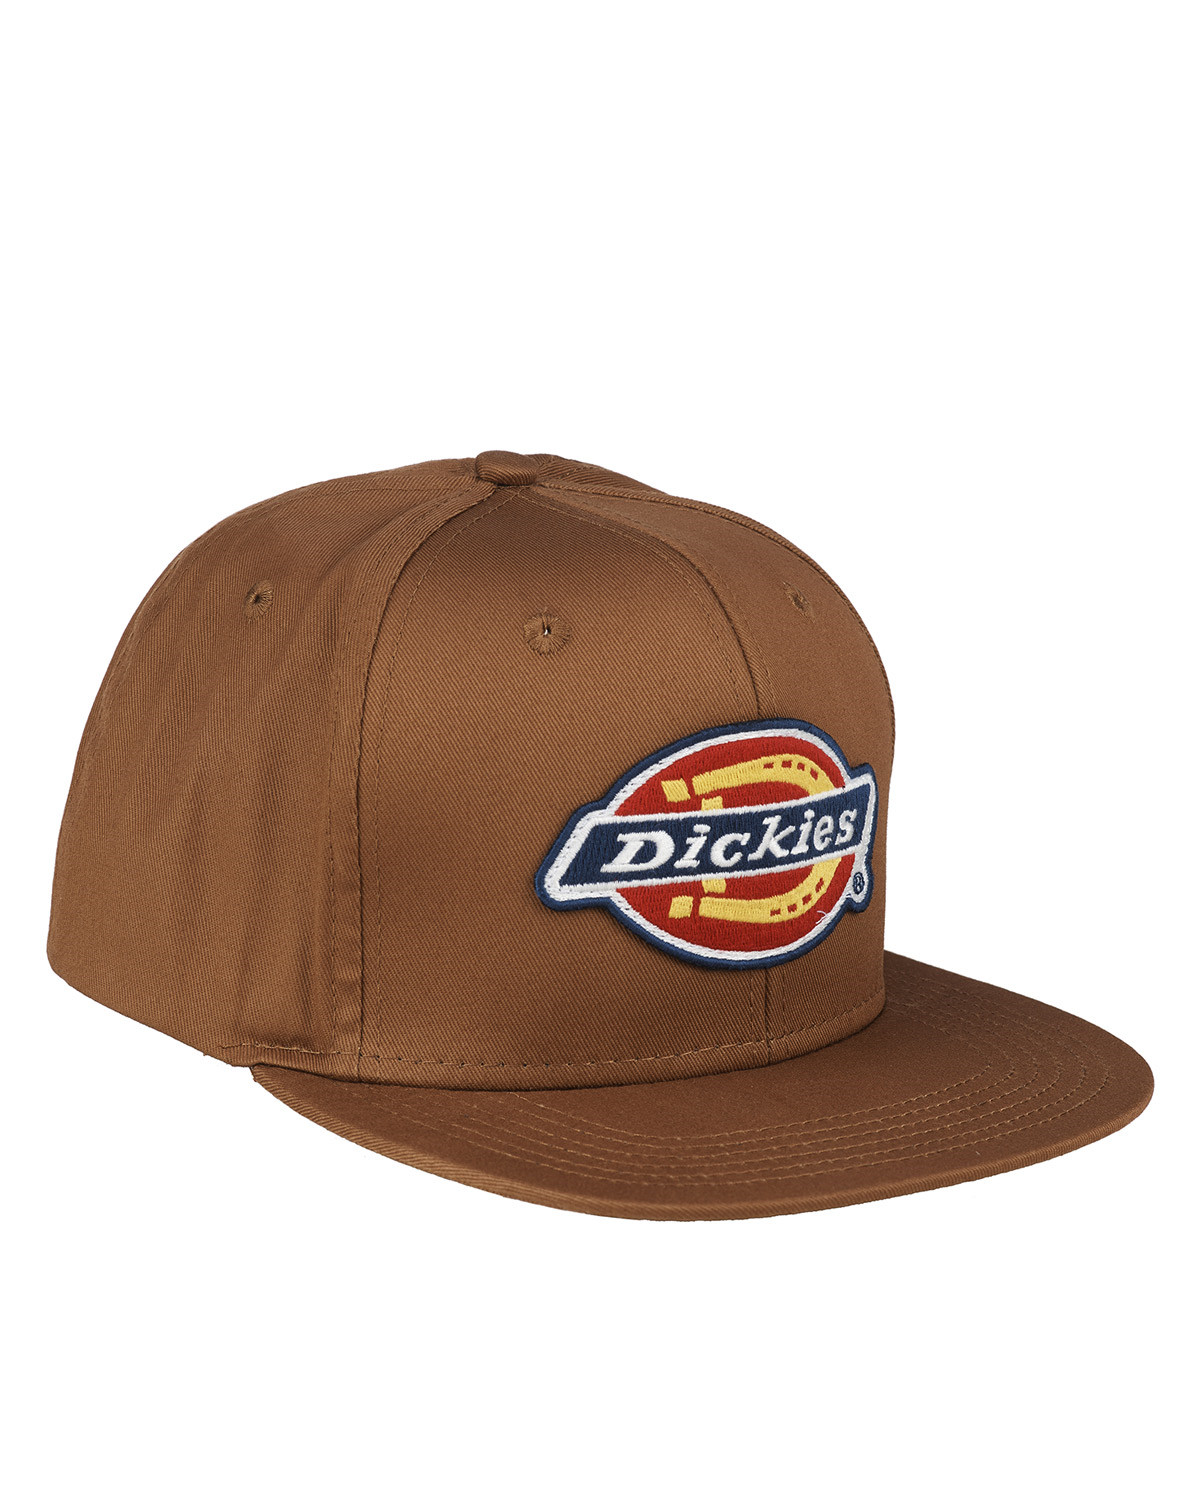 Image of   Dickies Muldoon 5 Panel Kasket (Brown Duck, One Size)